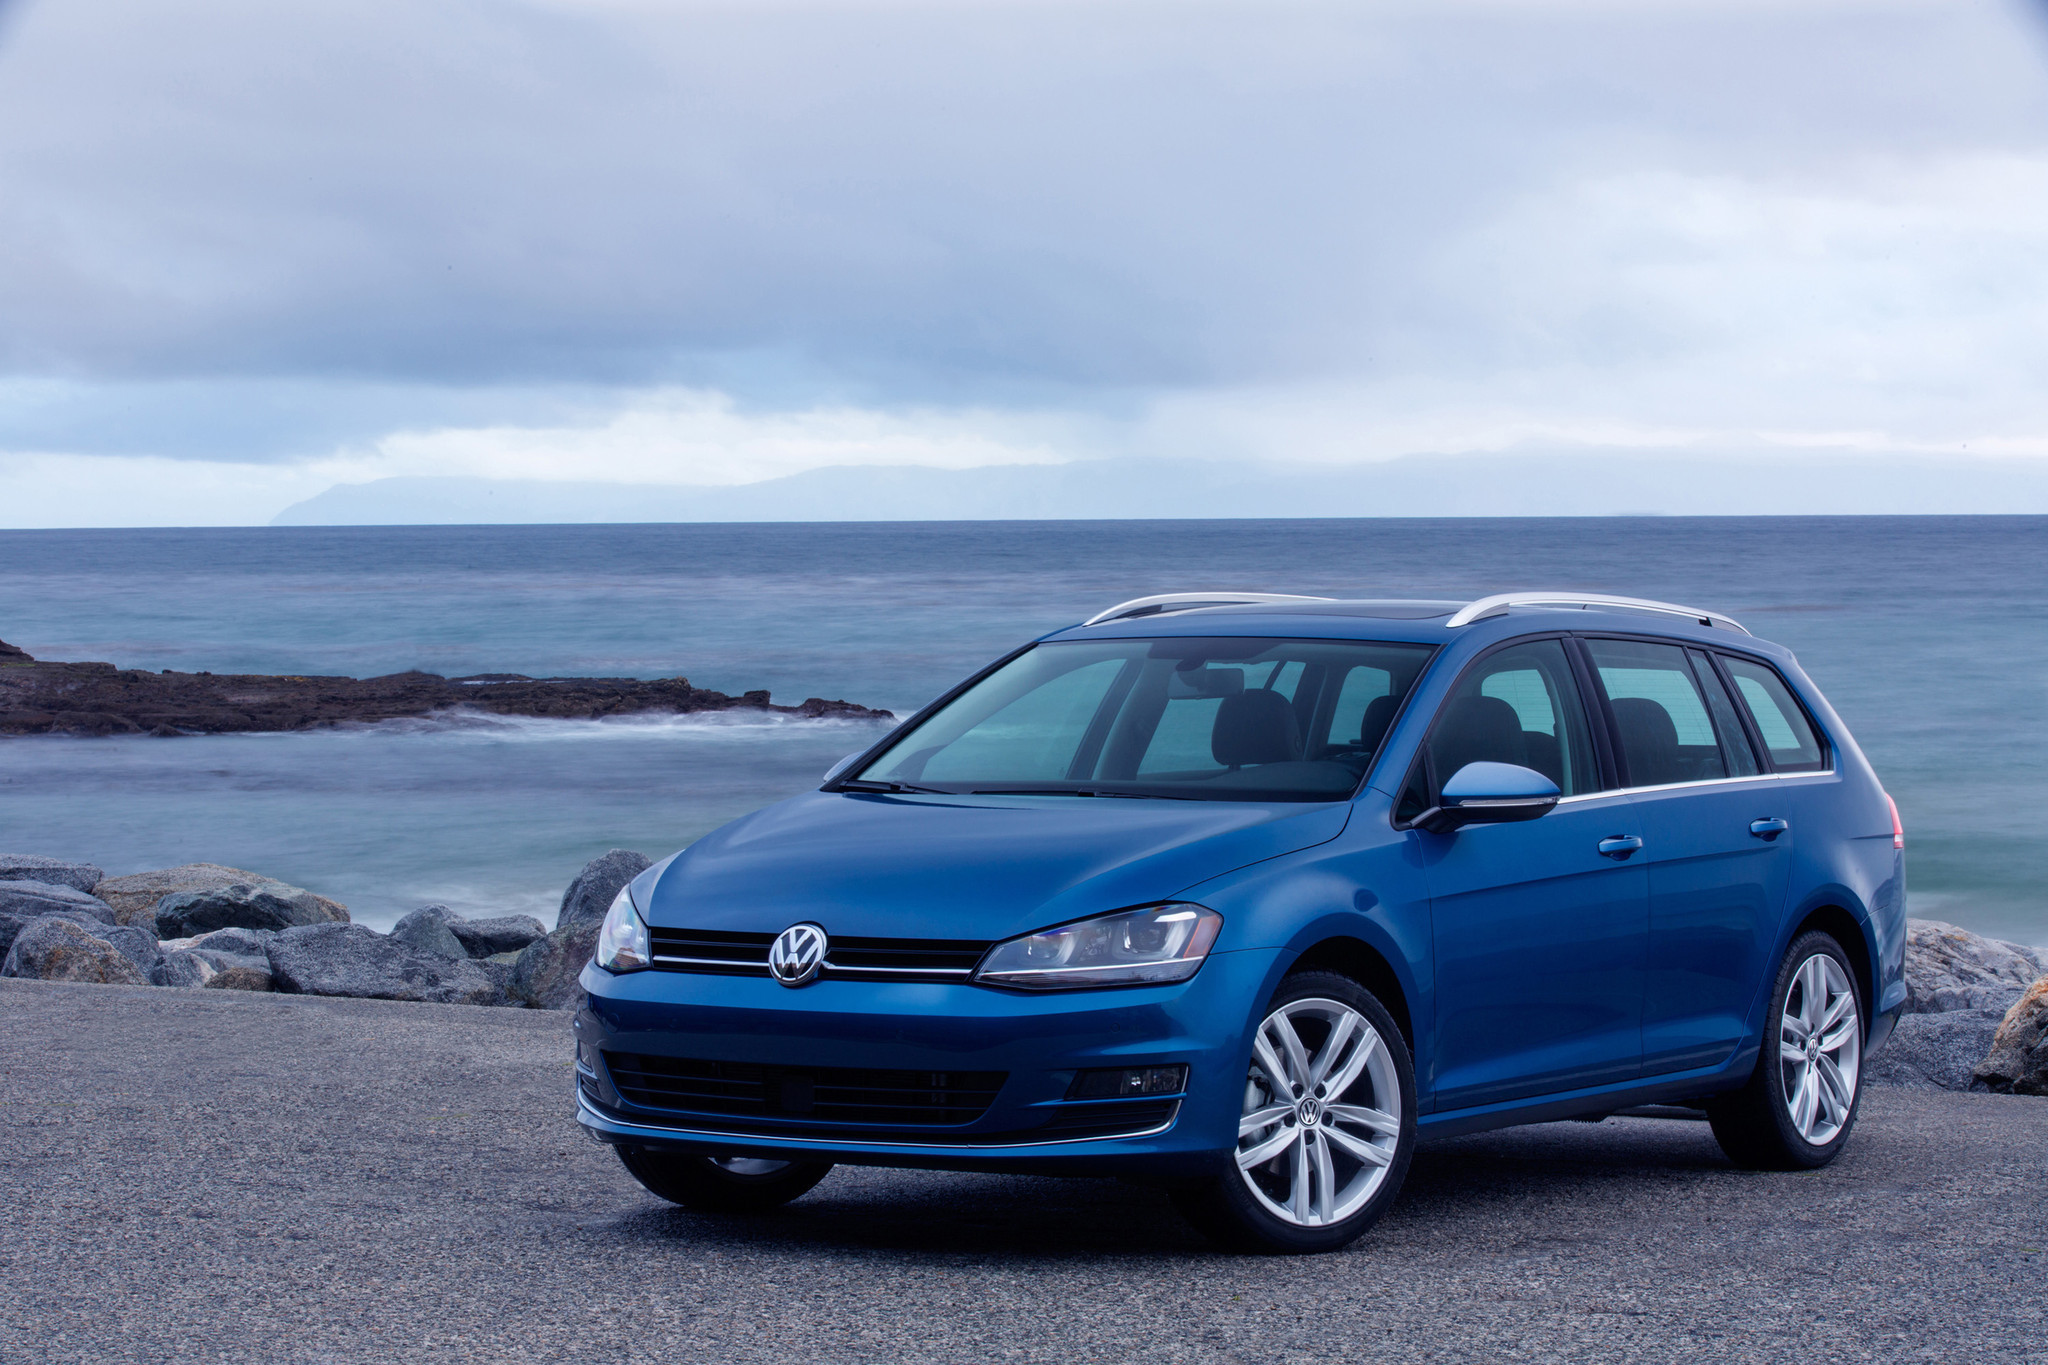 2015 VW Golf SportWagen stands alone among crowd of SUVs